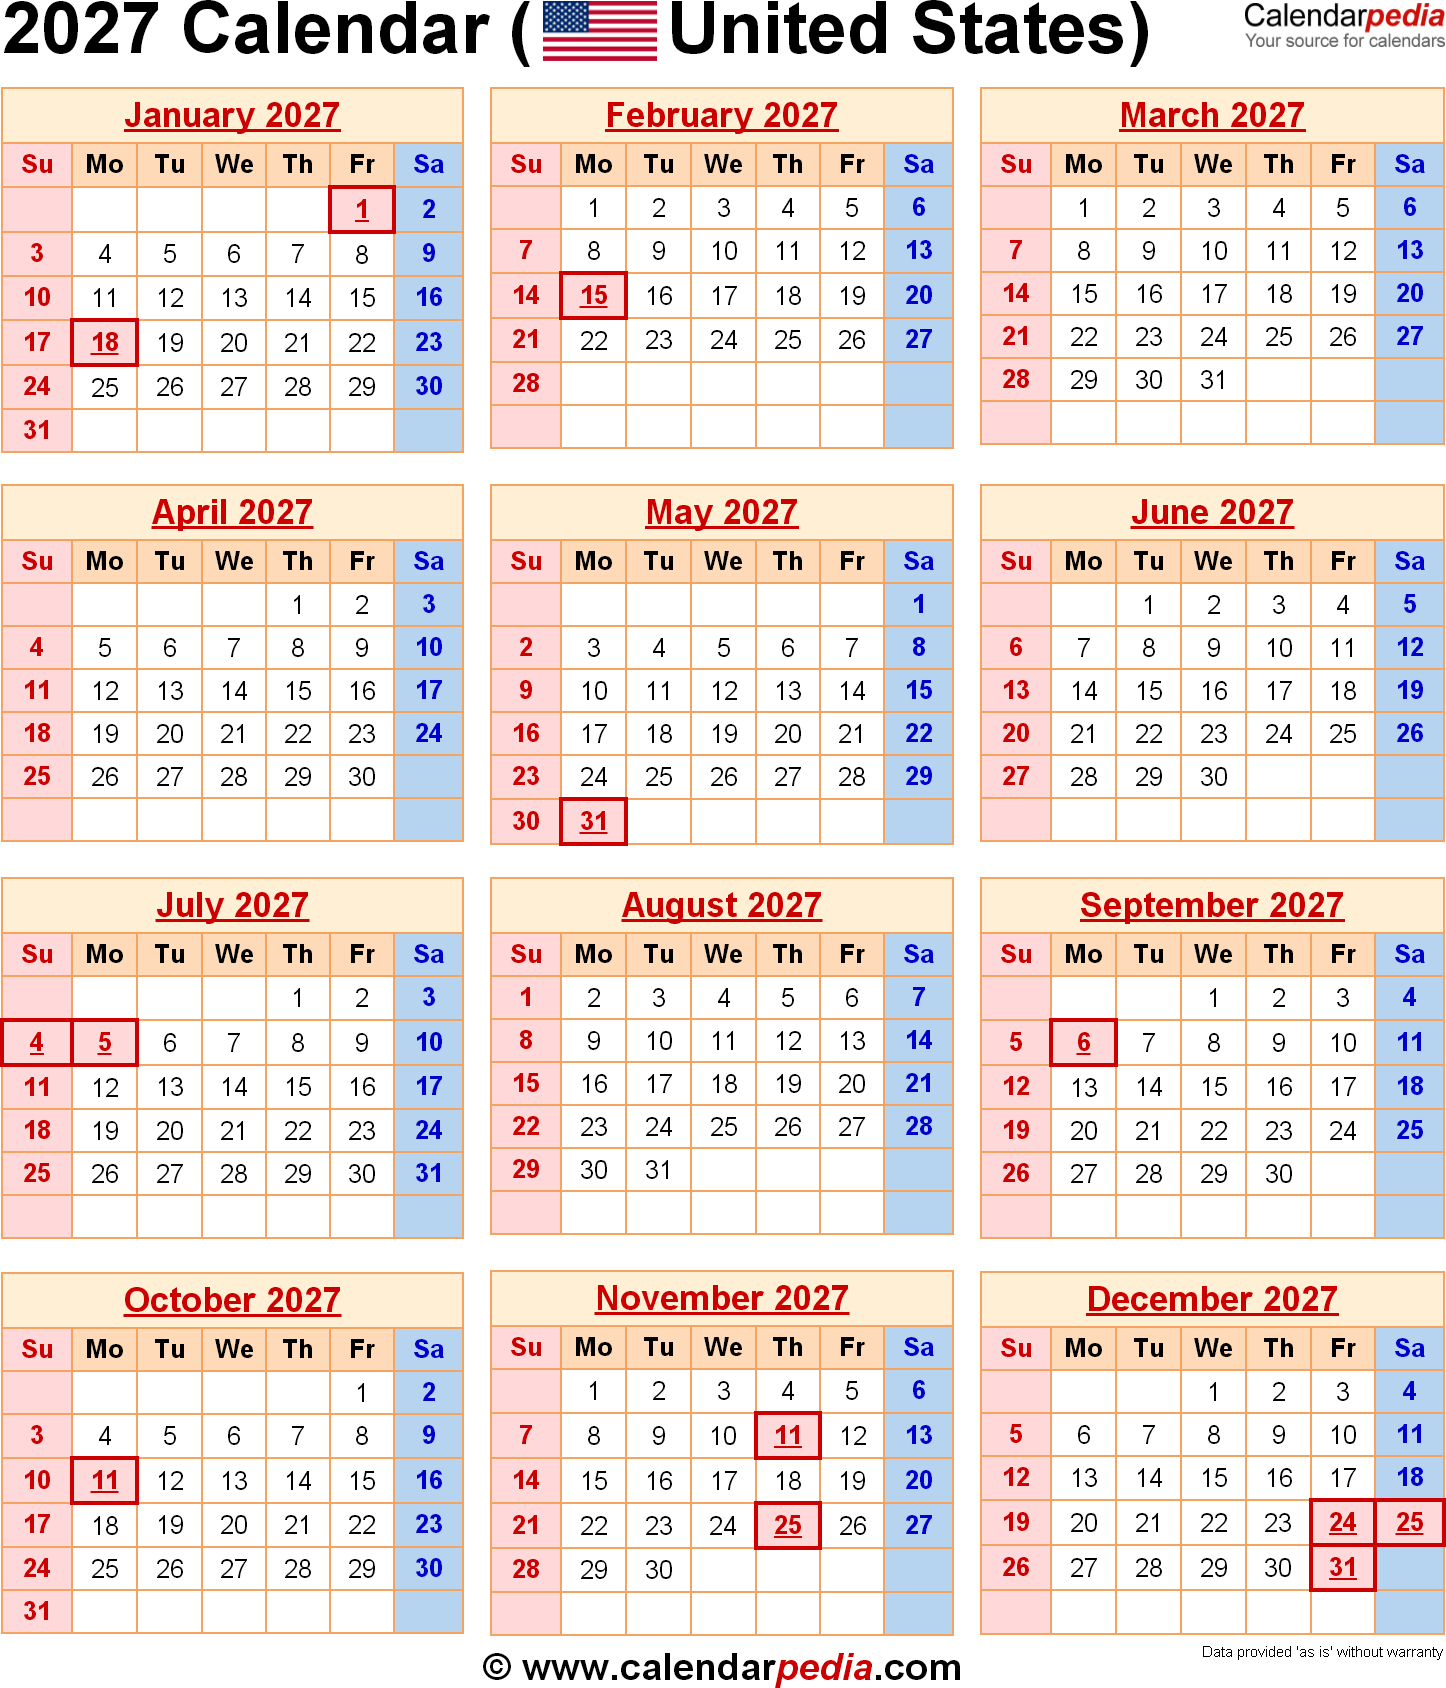 Year 2019 Calendar Usa With 2027 For The USA US Federal Holidays